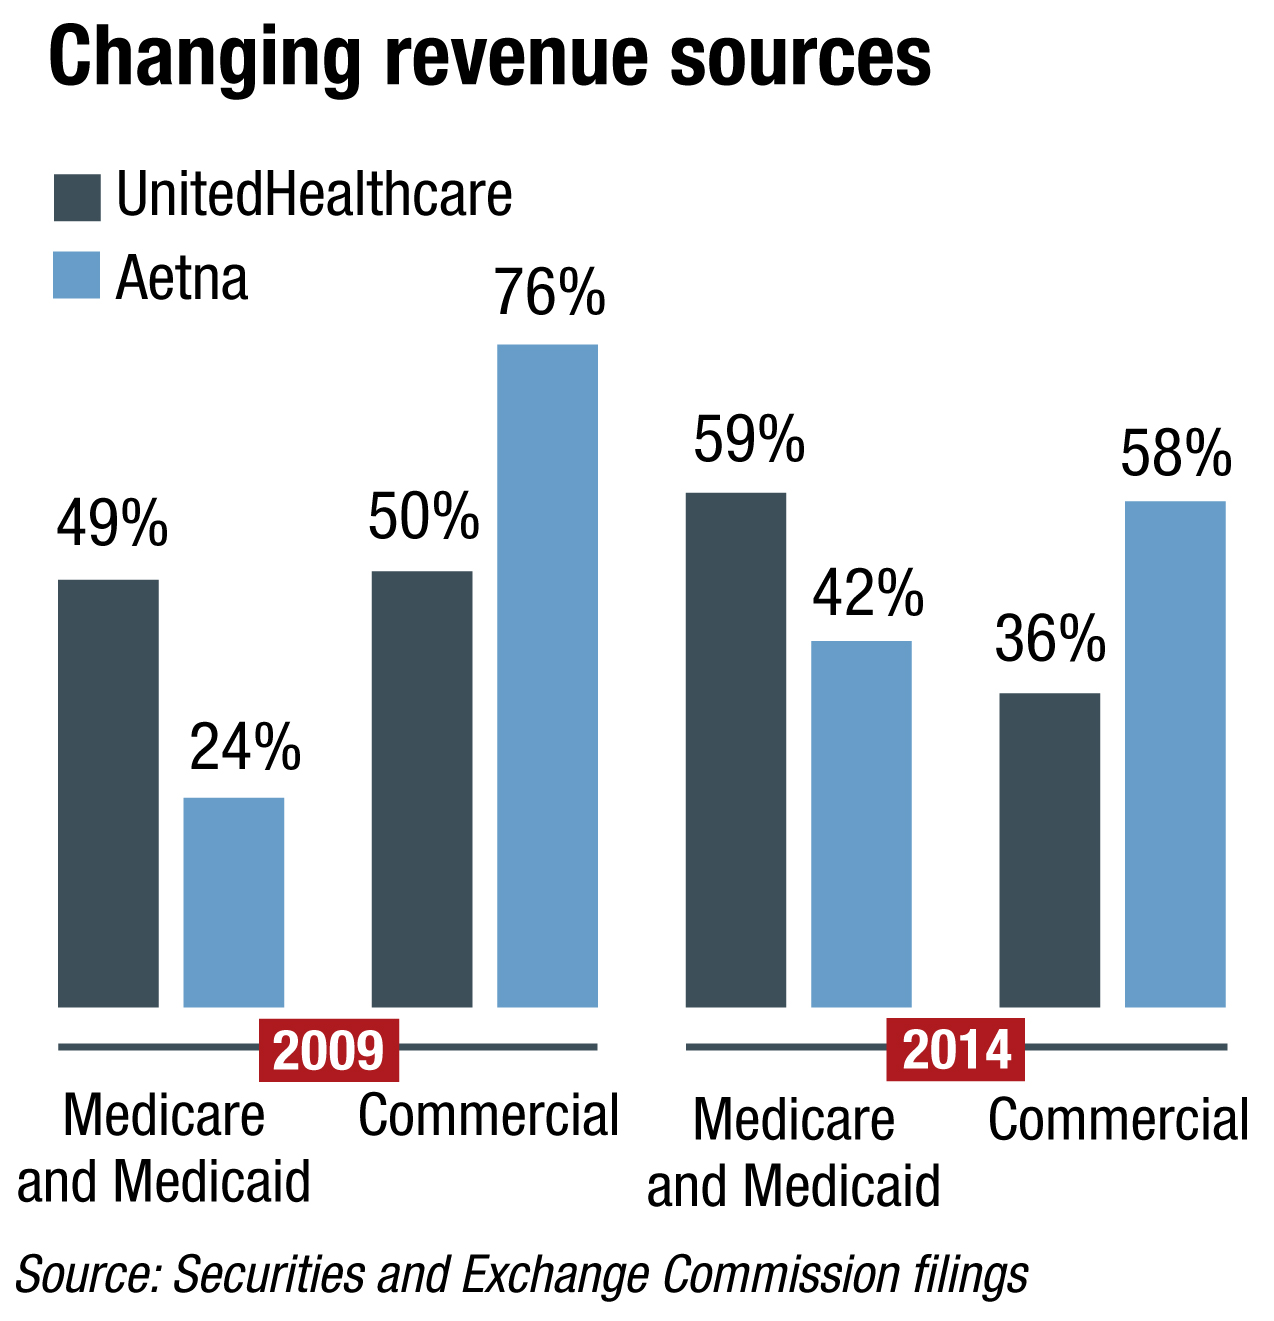 Aetna and UnitedHealthcare revenue sources